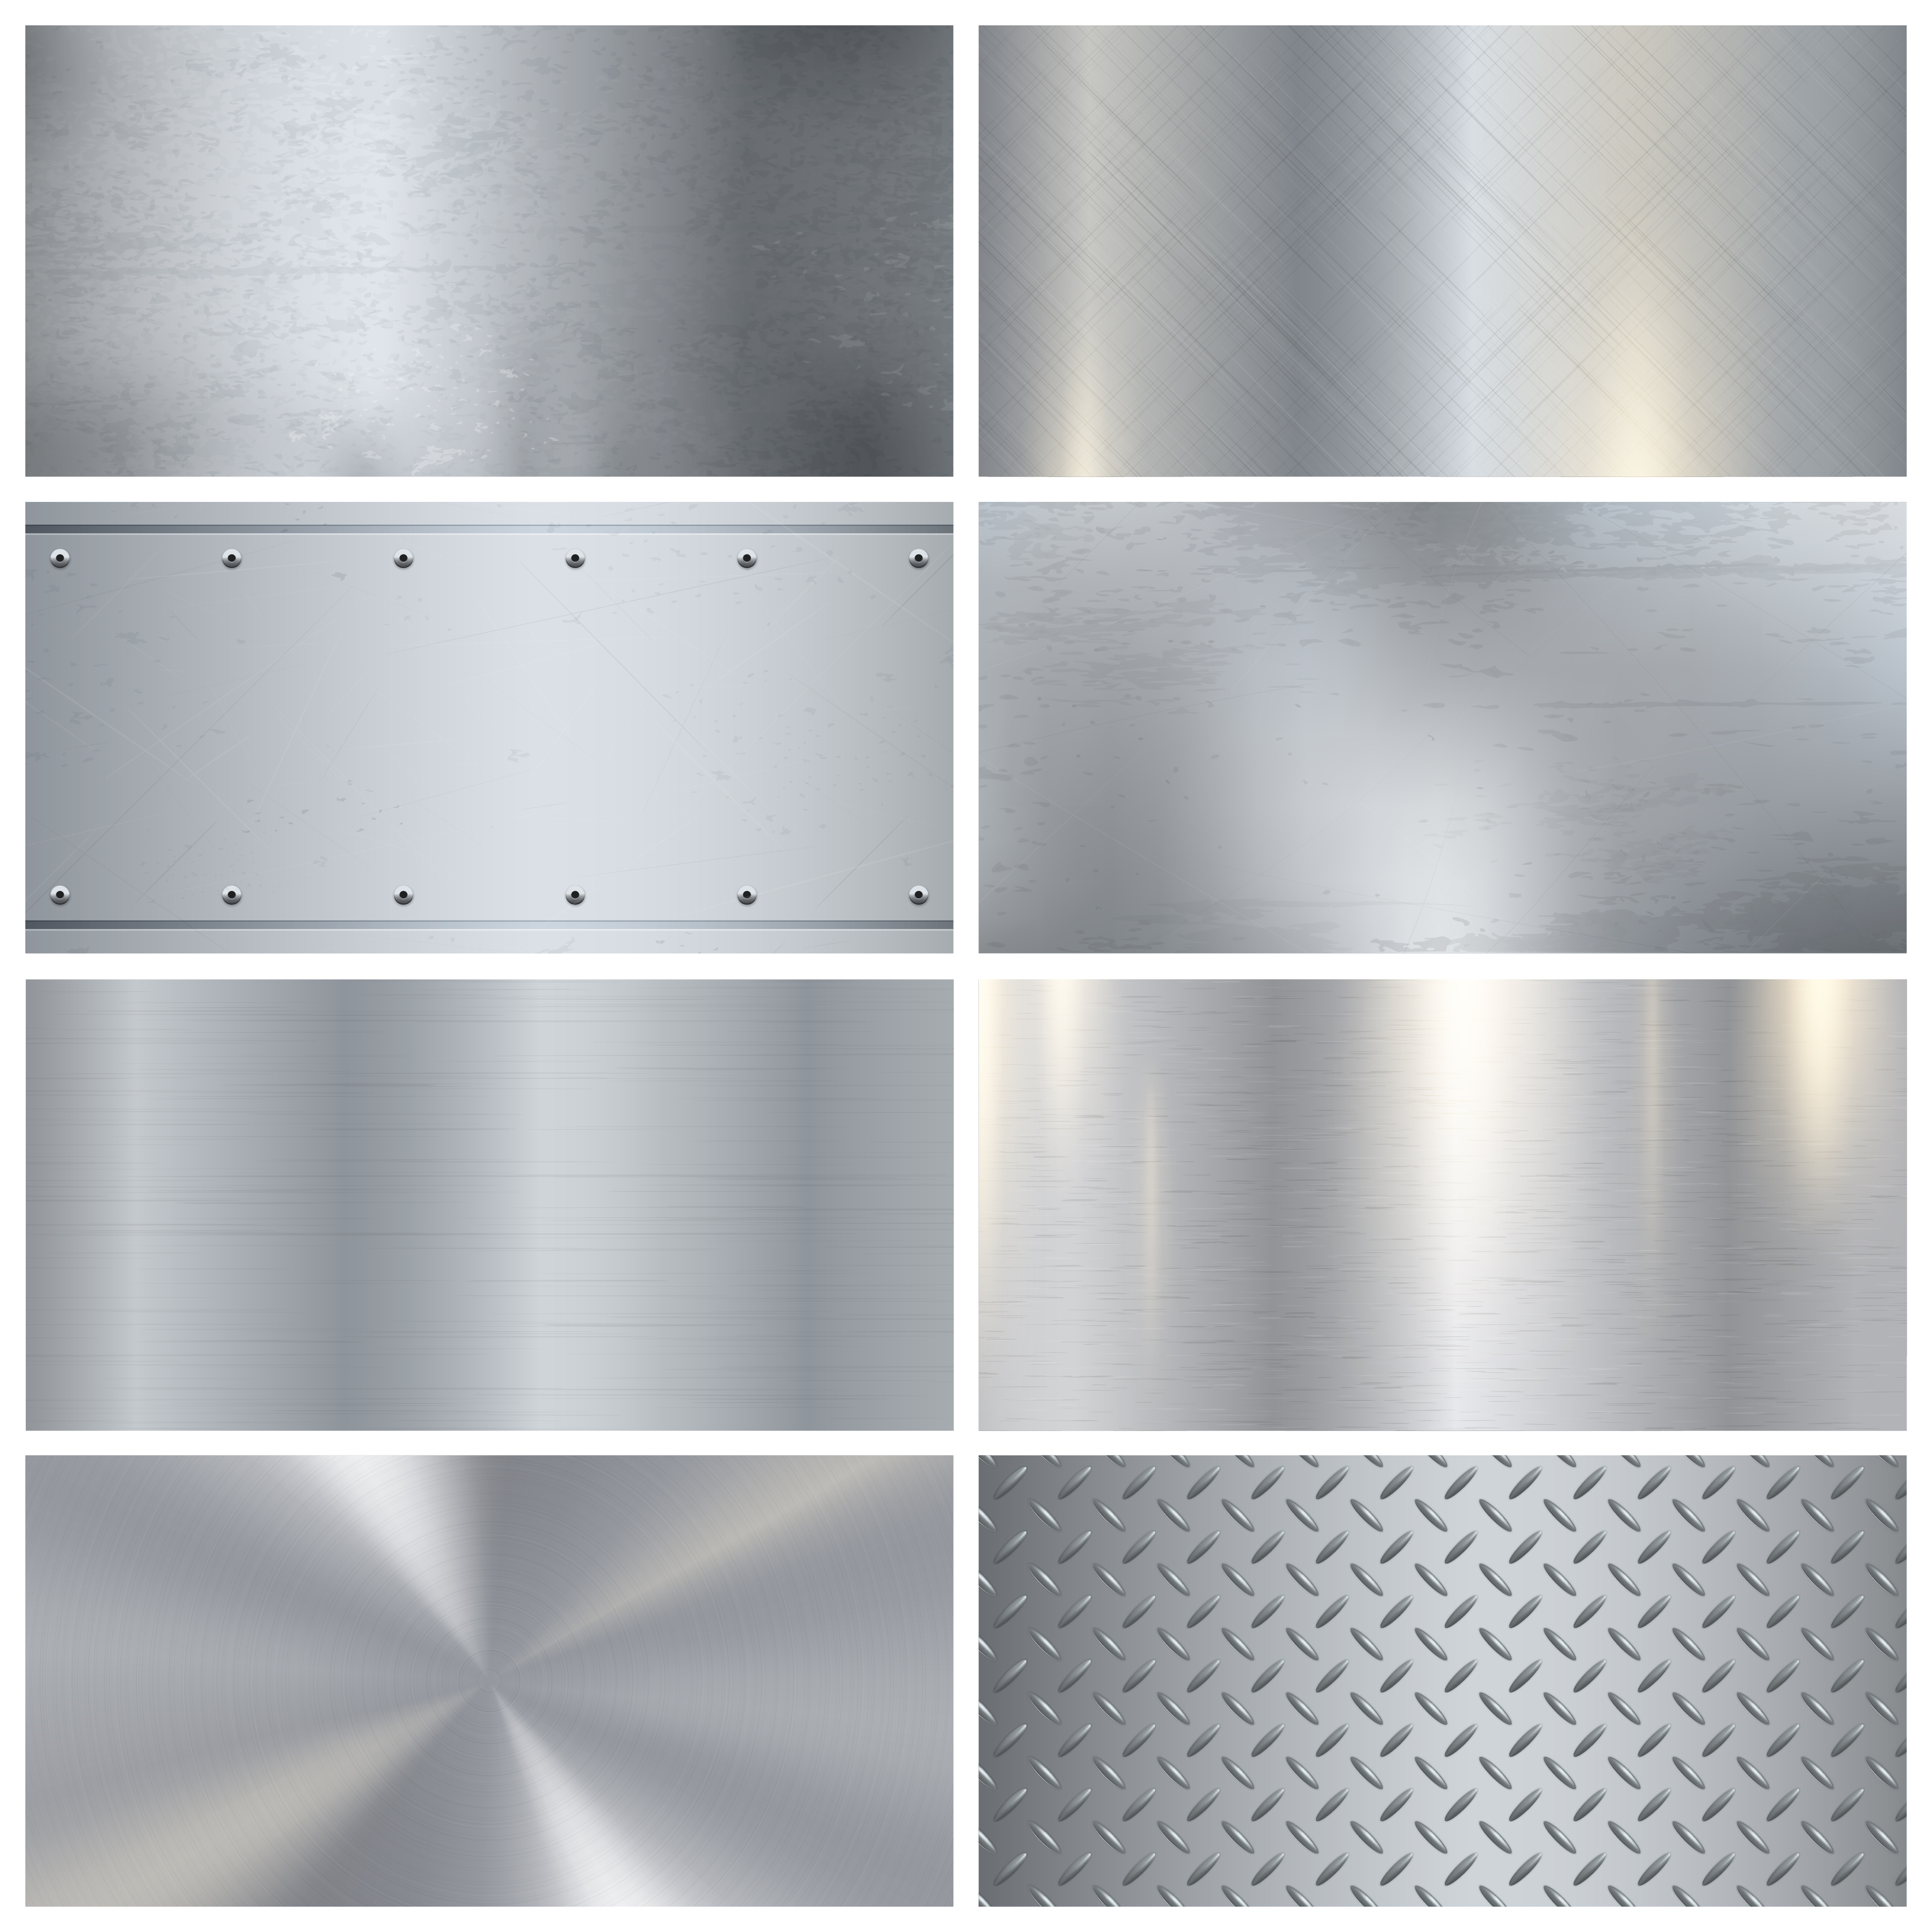 Metal Texture Realistic 3d Samples Collection Download